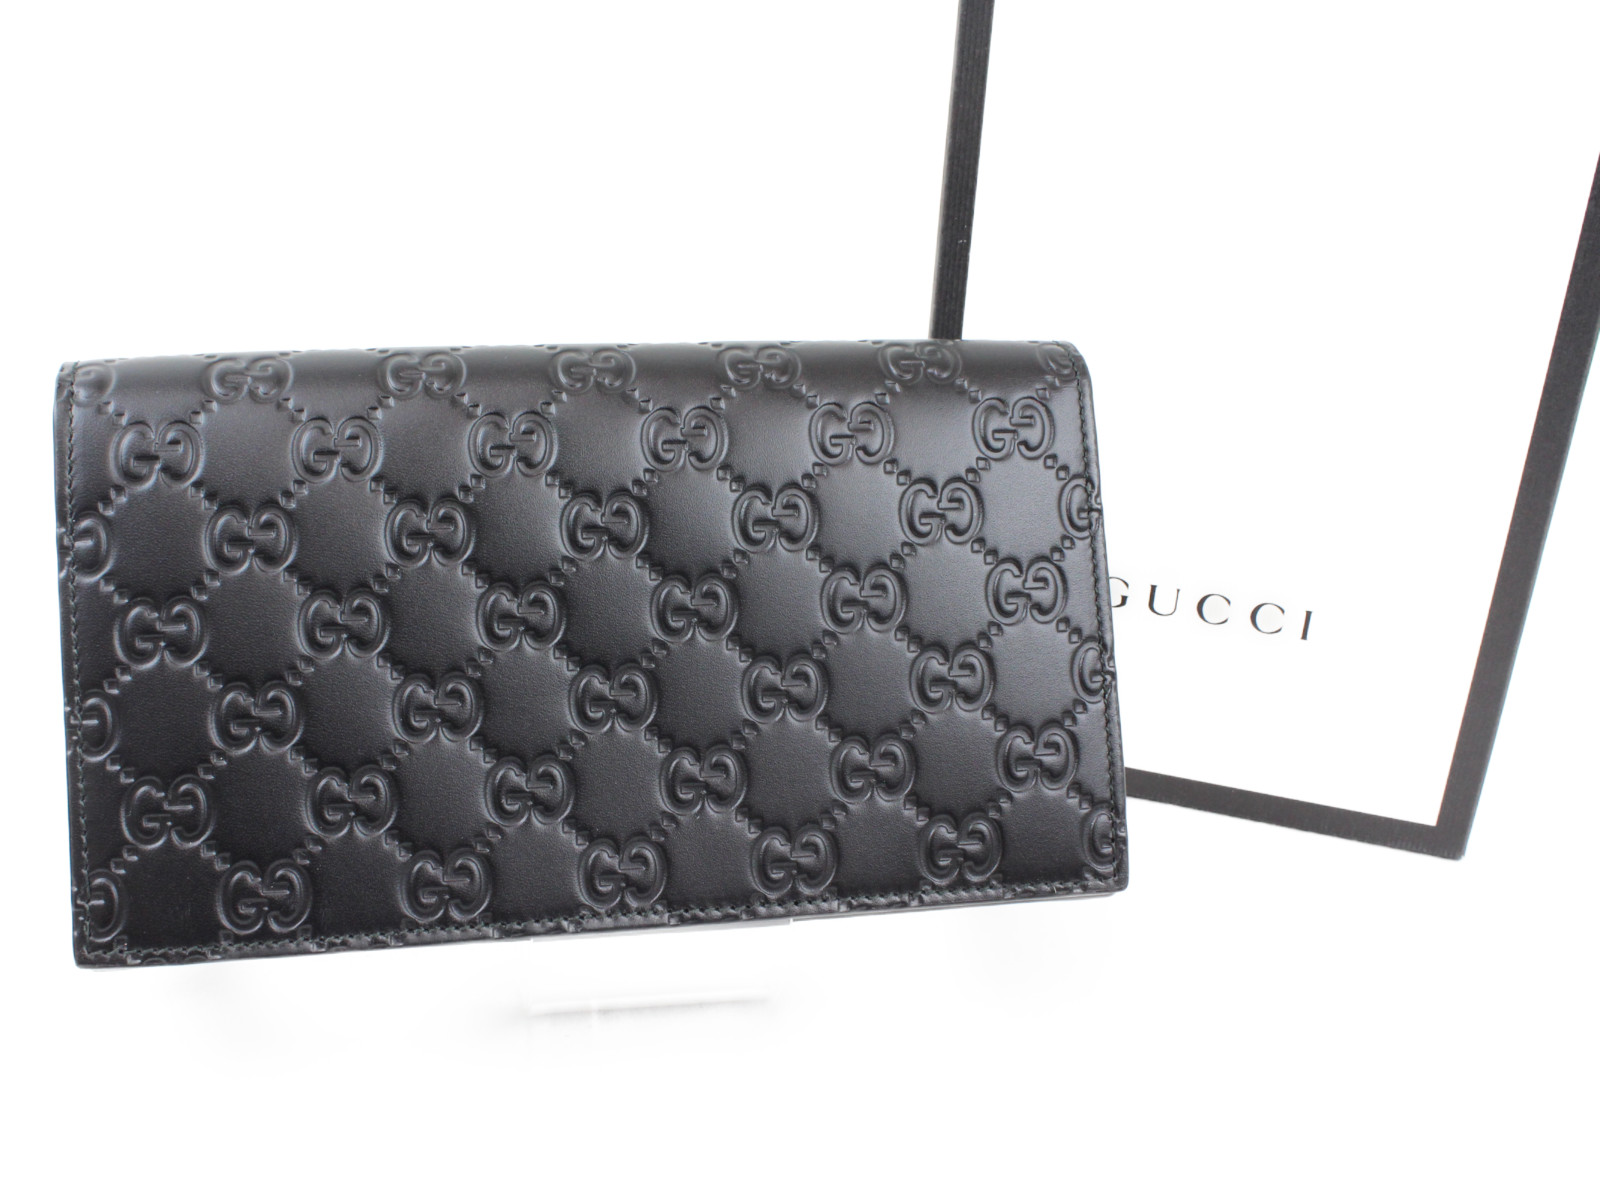 check out 05a25 8600a GUCCI 【中古】 メンズ 長財布 財布 ウォレット ブラック グッチ ...